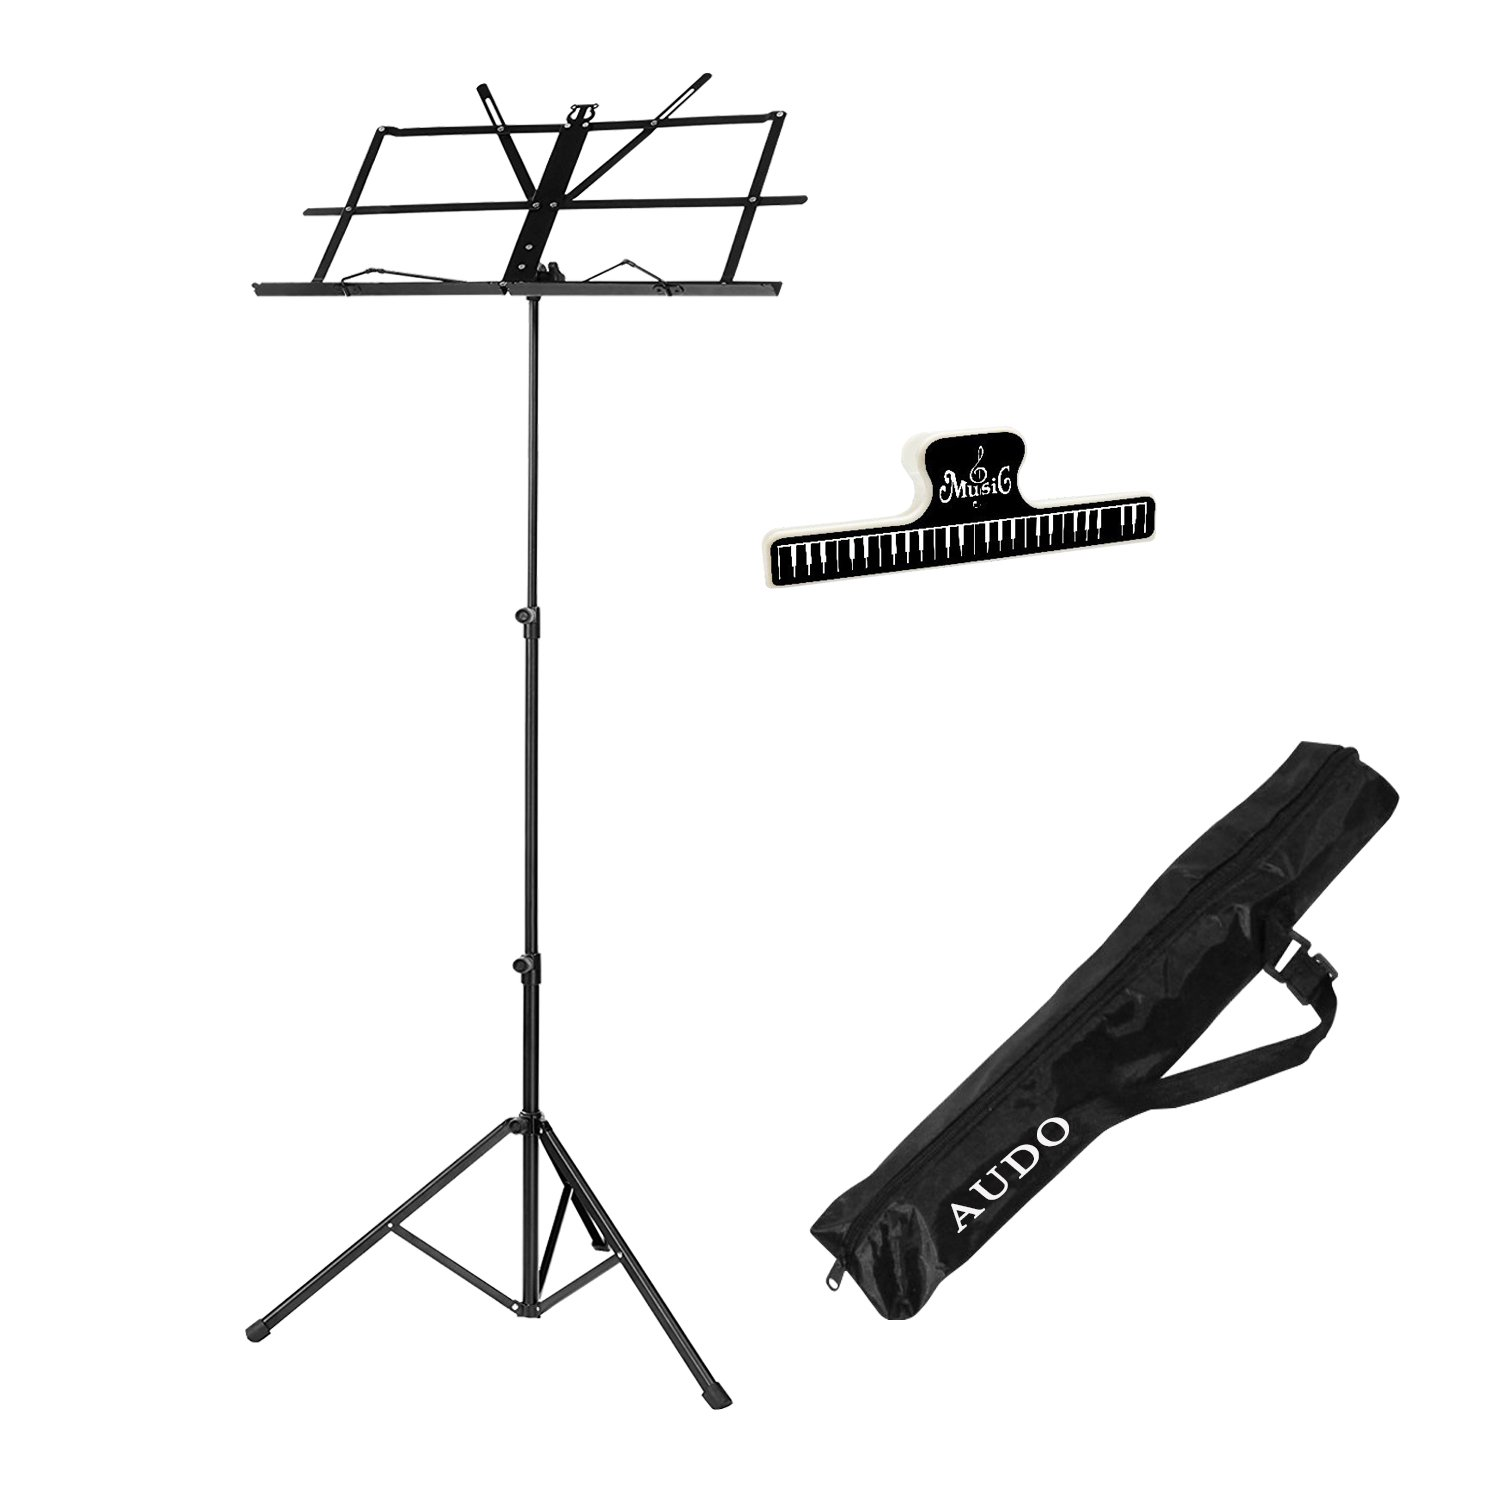 Music Stand Audo Folding Music Stand With Music Book Clip And Carry Bag Black (1Pack)